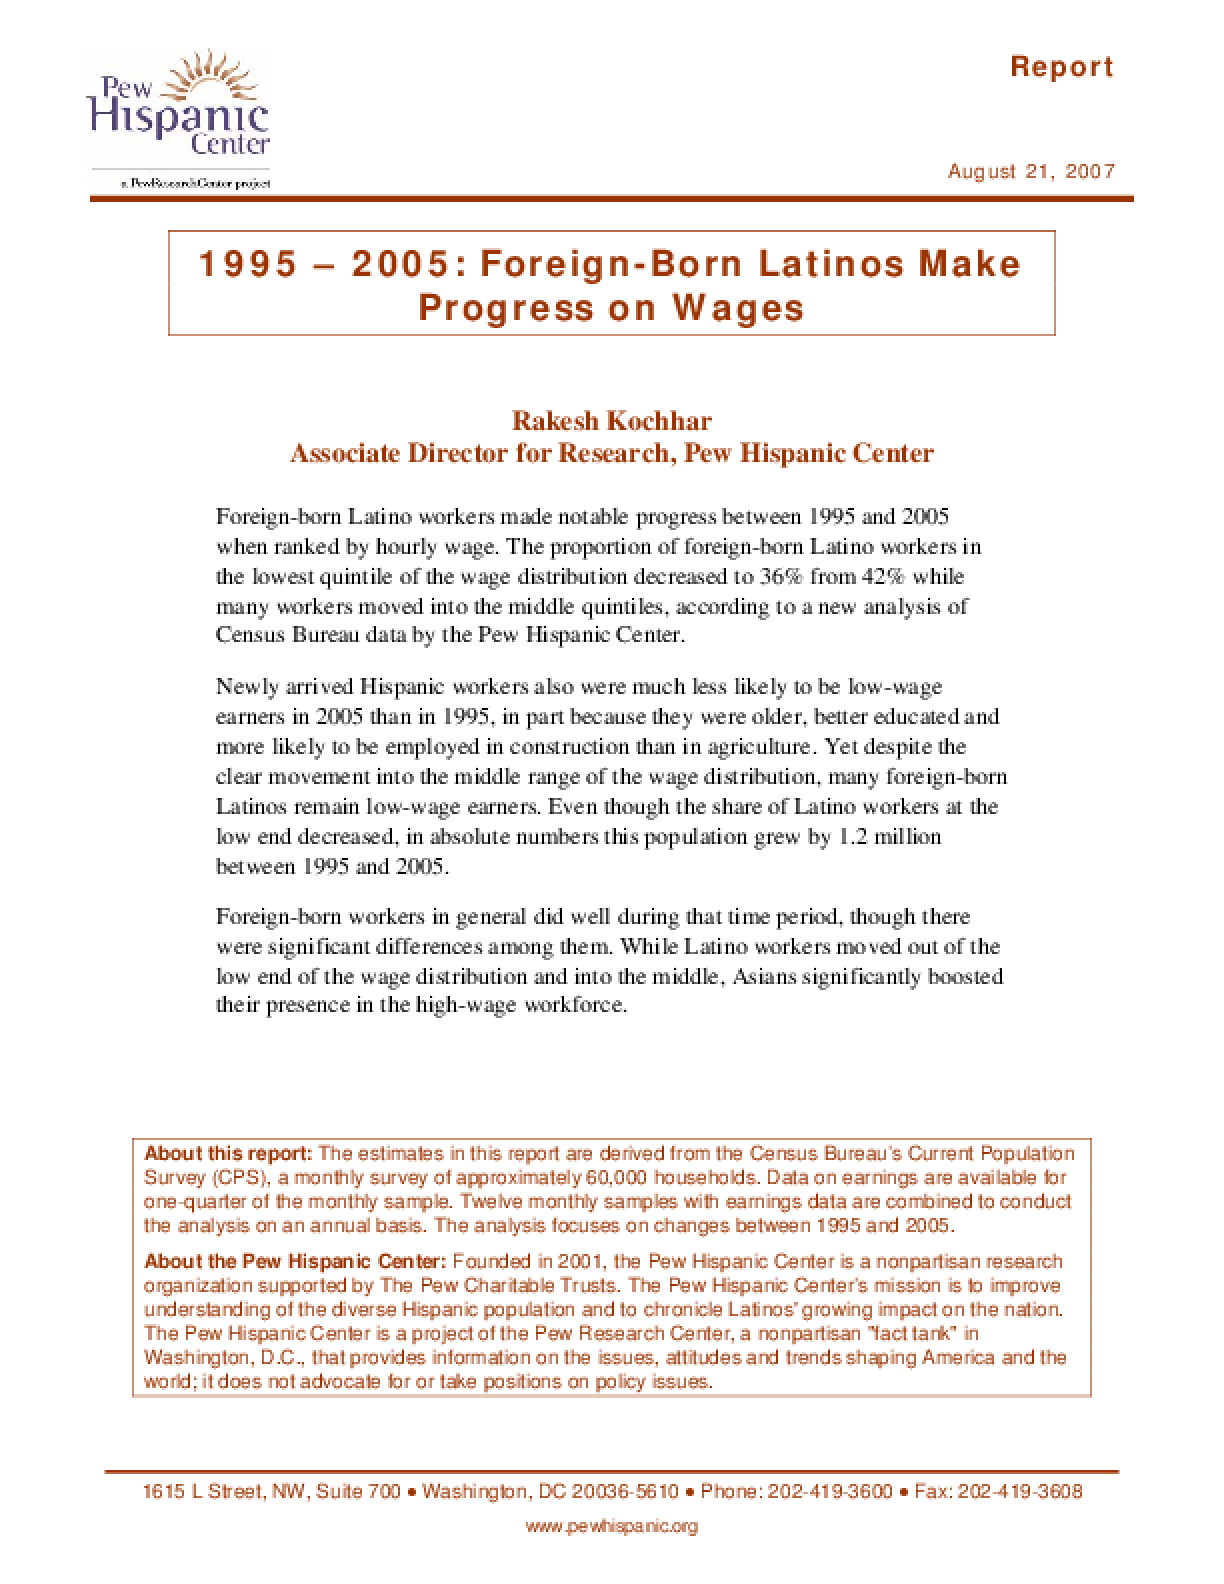 1995 - 2005: Foreign-Born Latinos Make Progress on Wages